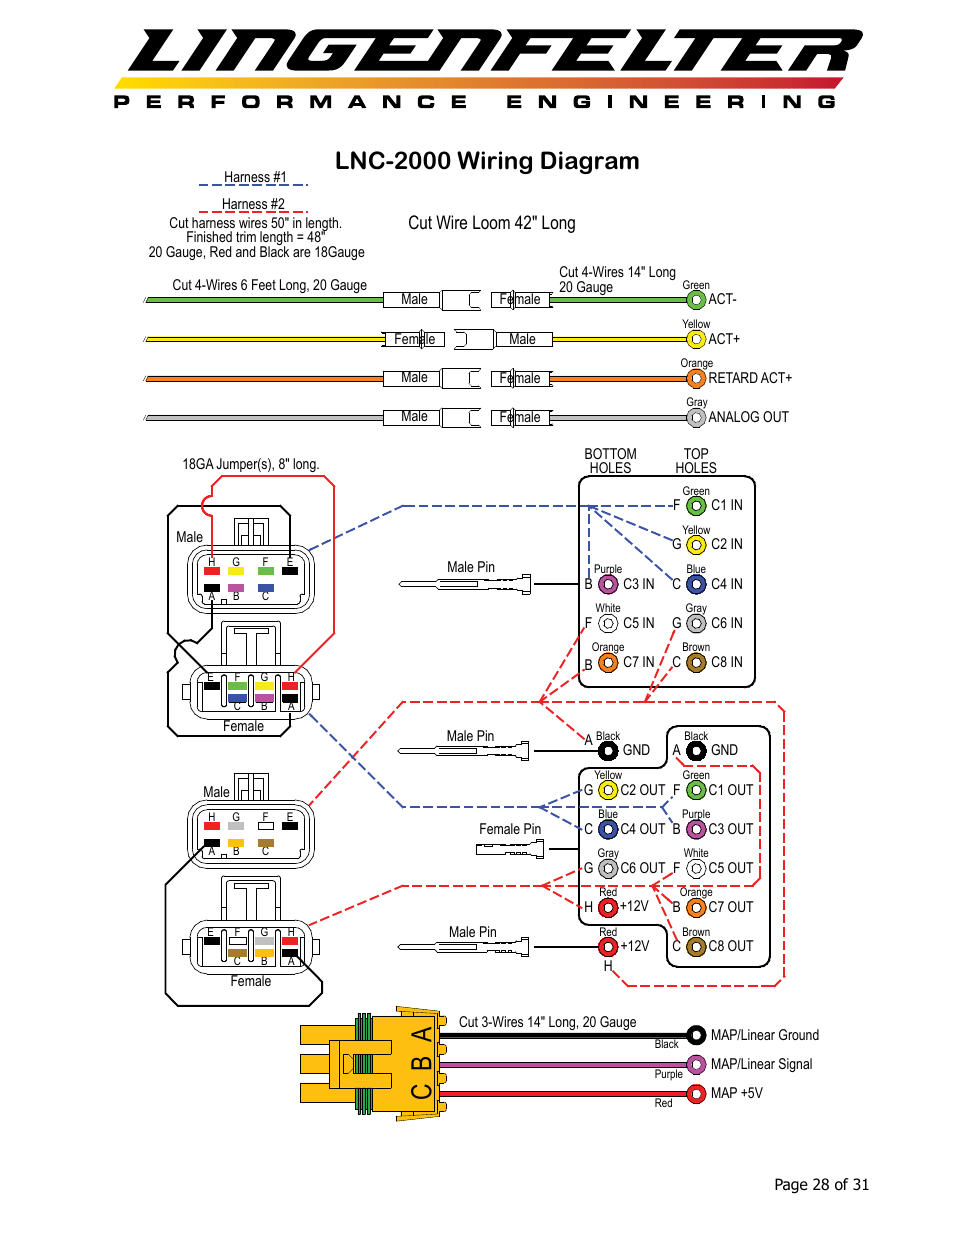 hight resolution of ab c lnc 2000 wiring diagram cut wire loom 42 long lingenfelter l460145297 lingenfelter lnc 2000 ls timing retard launch controller v2 0 user manual